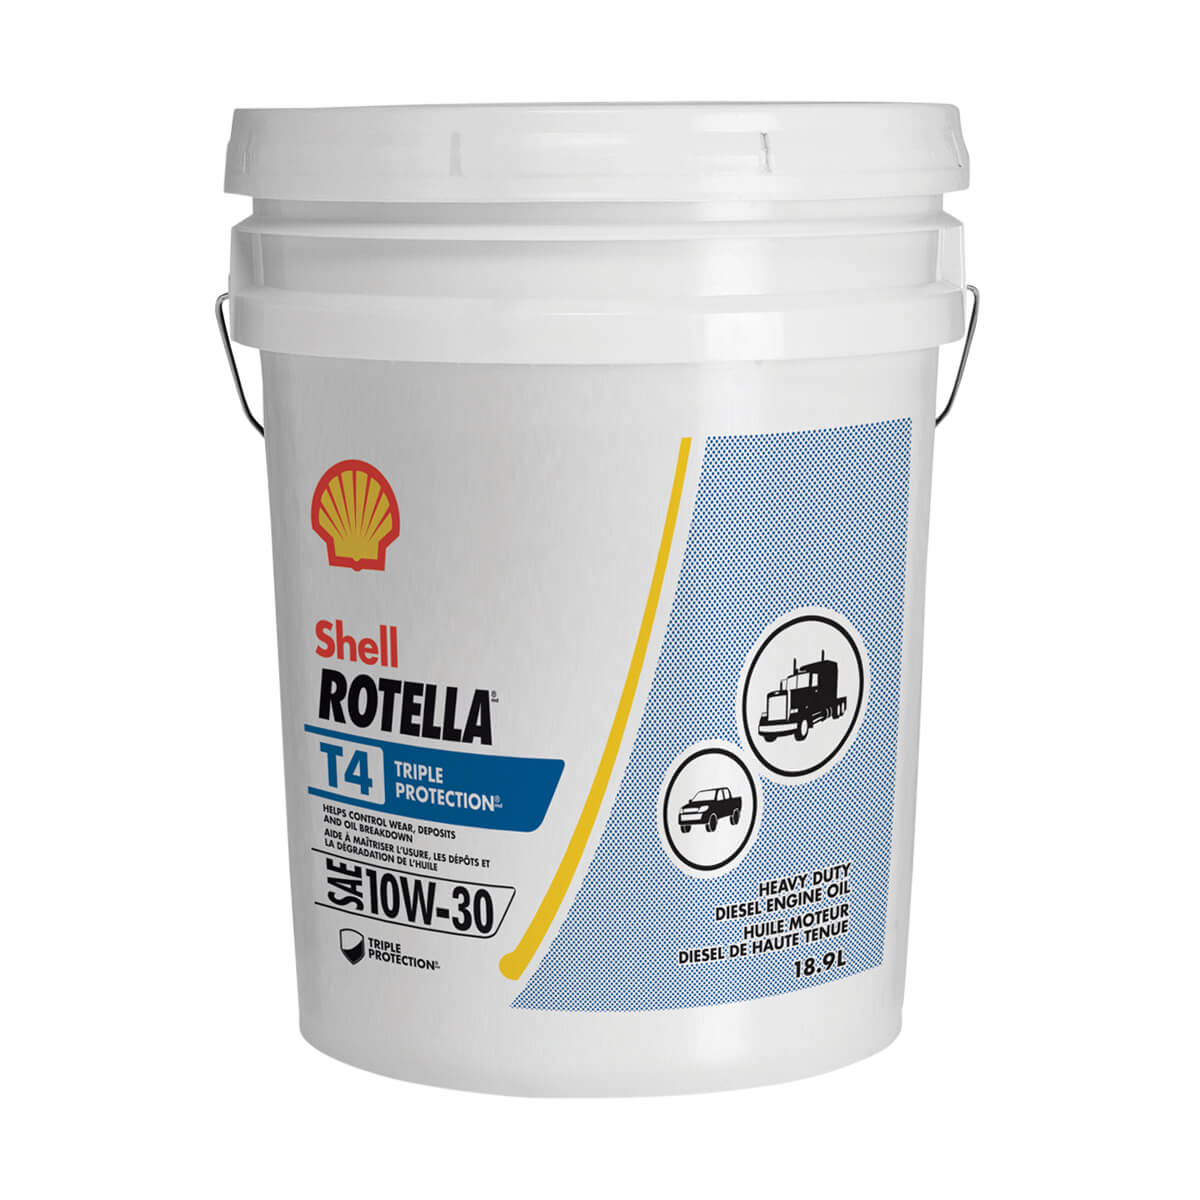 Shell Rotella T4 Triple Protection 10W-30 - 18.9 L